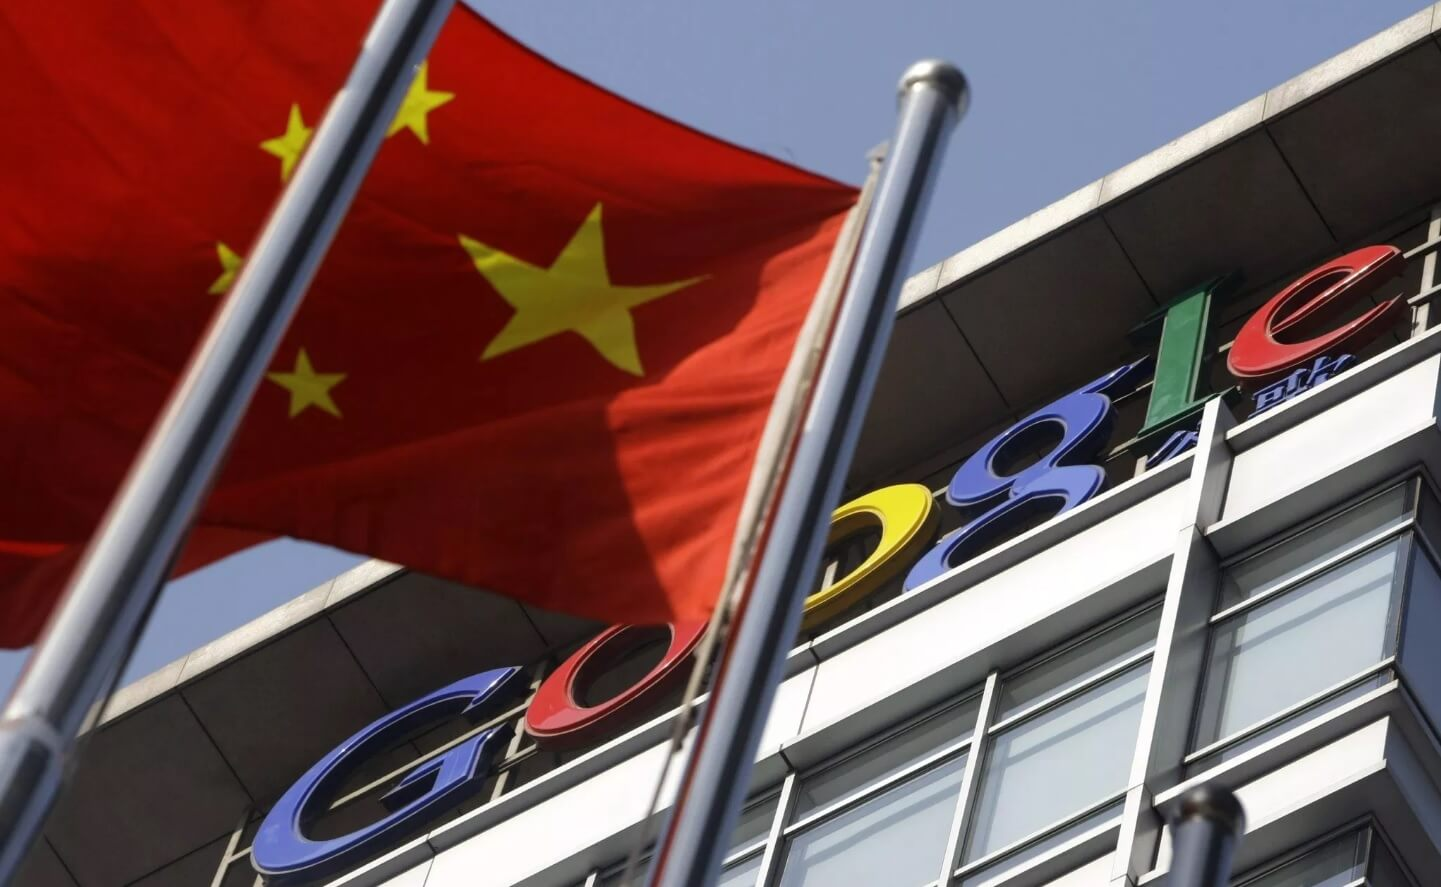 Google is looking at bringing its cloud business to China